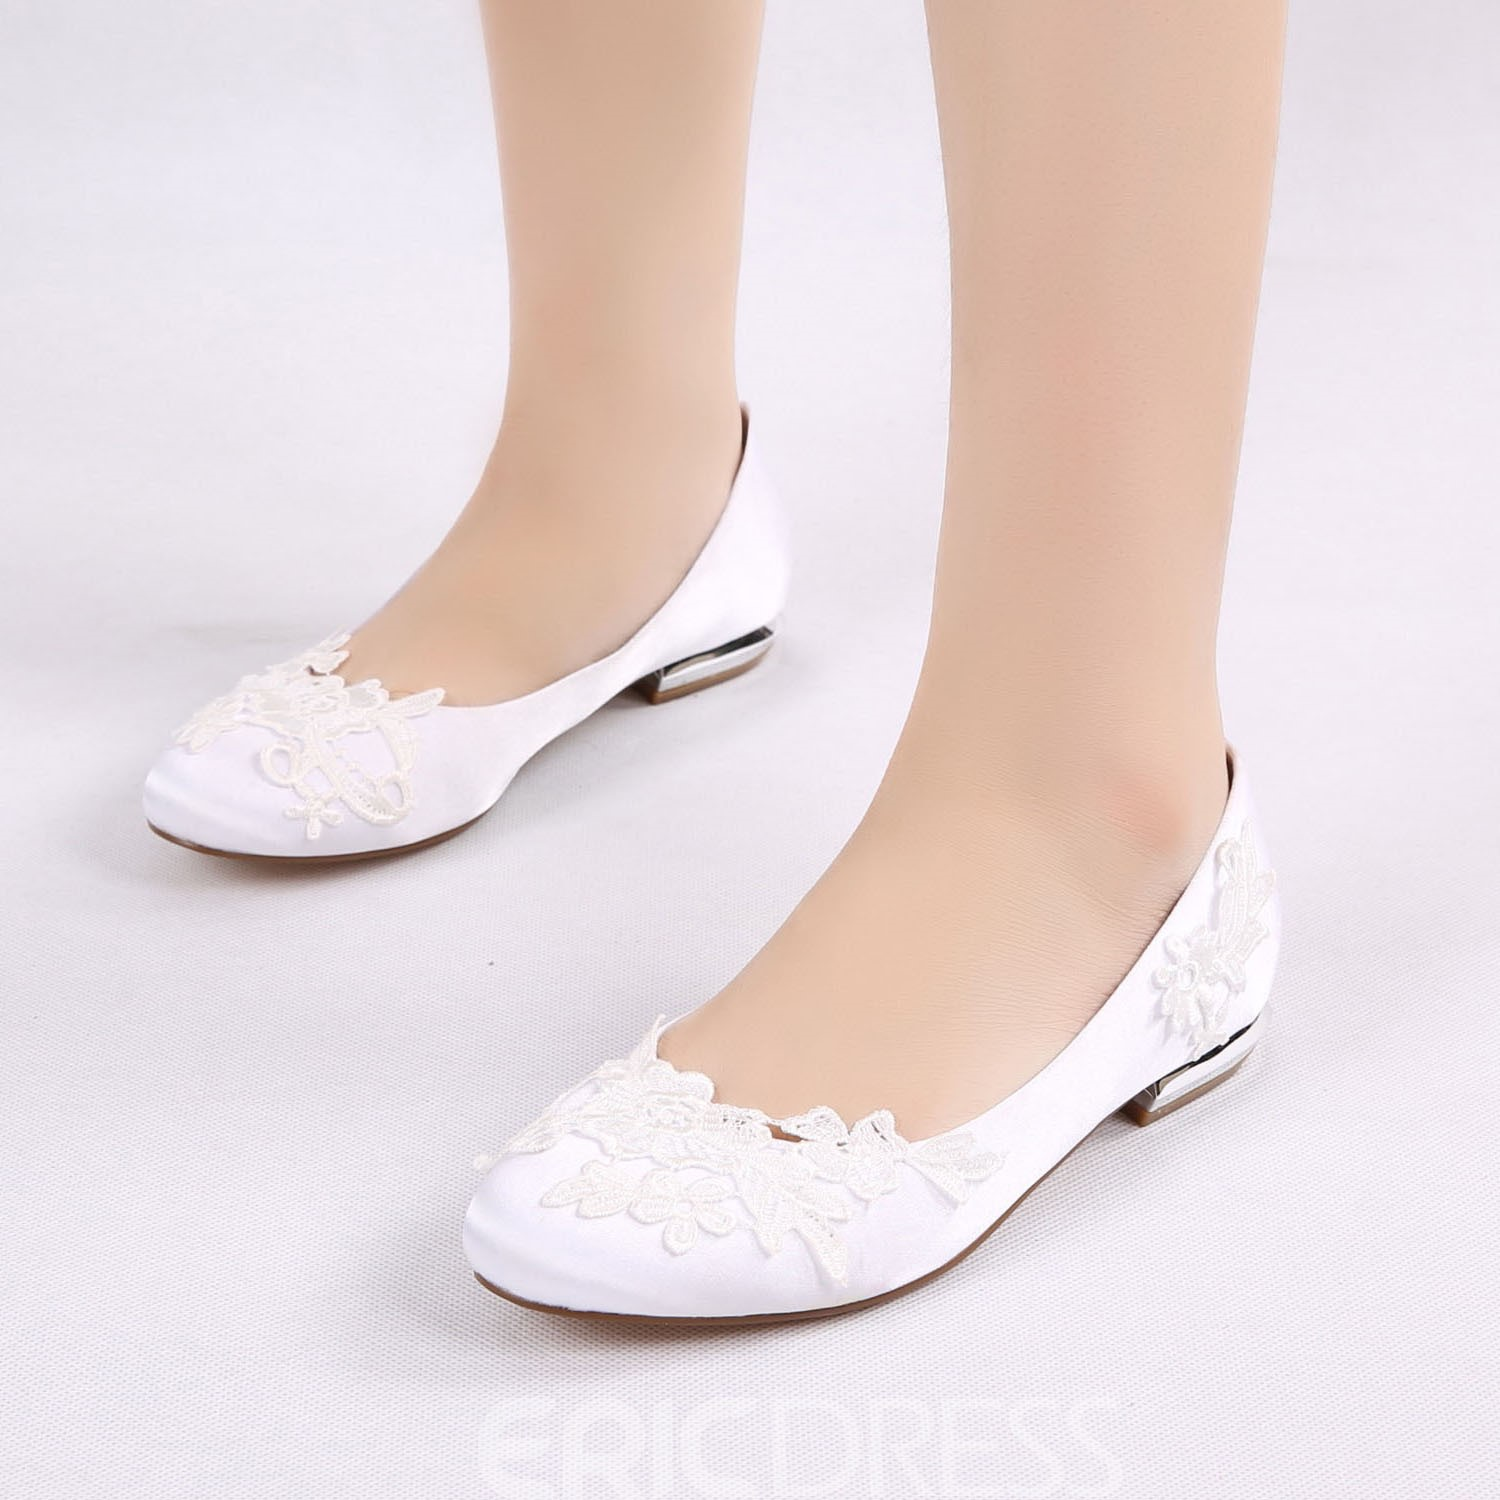 Chaussures De Mariage Simples Ericdress Round Toe 12919049